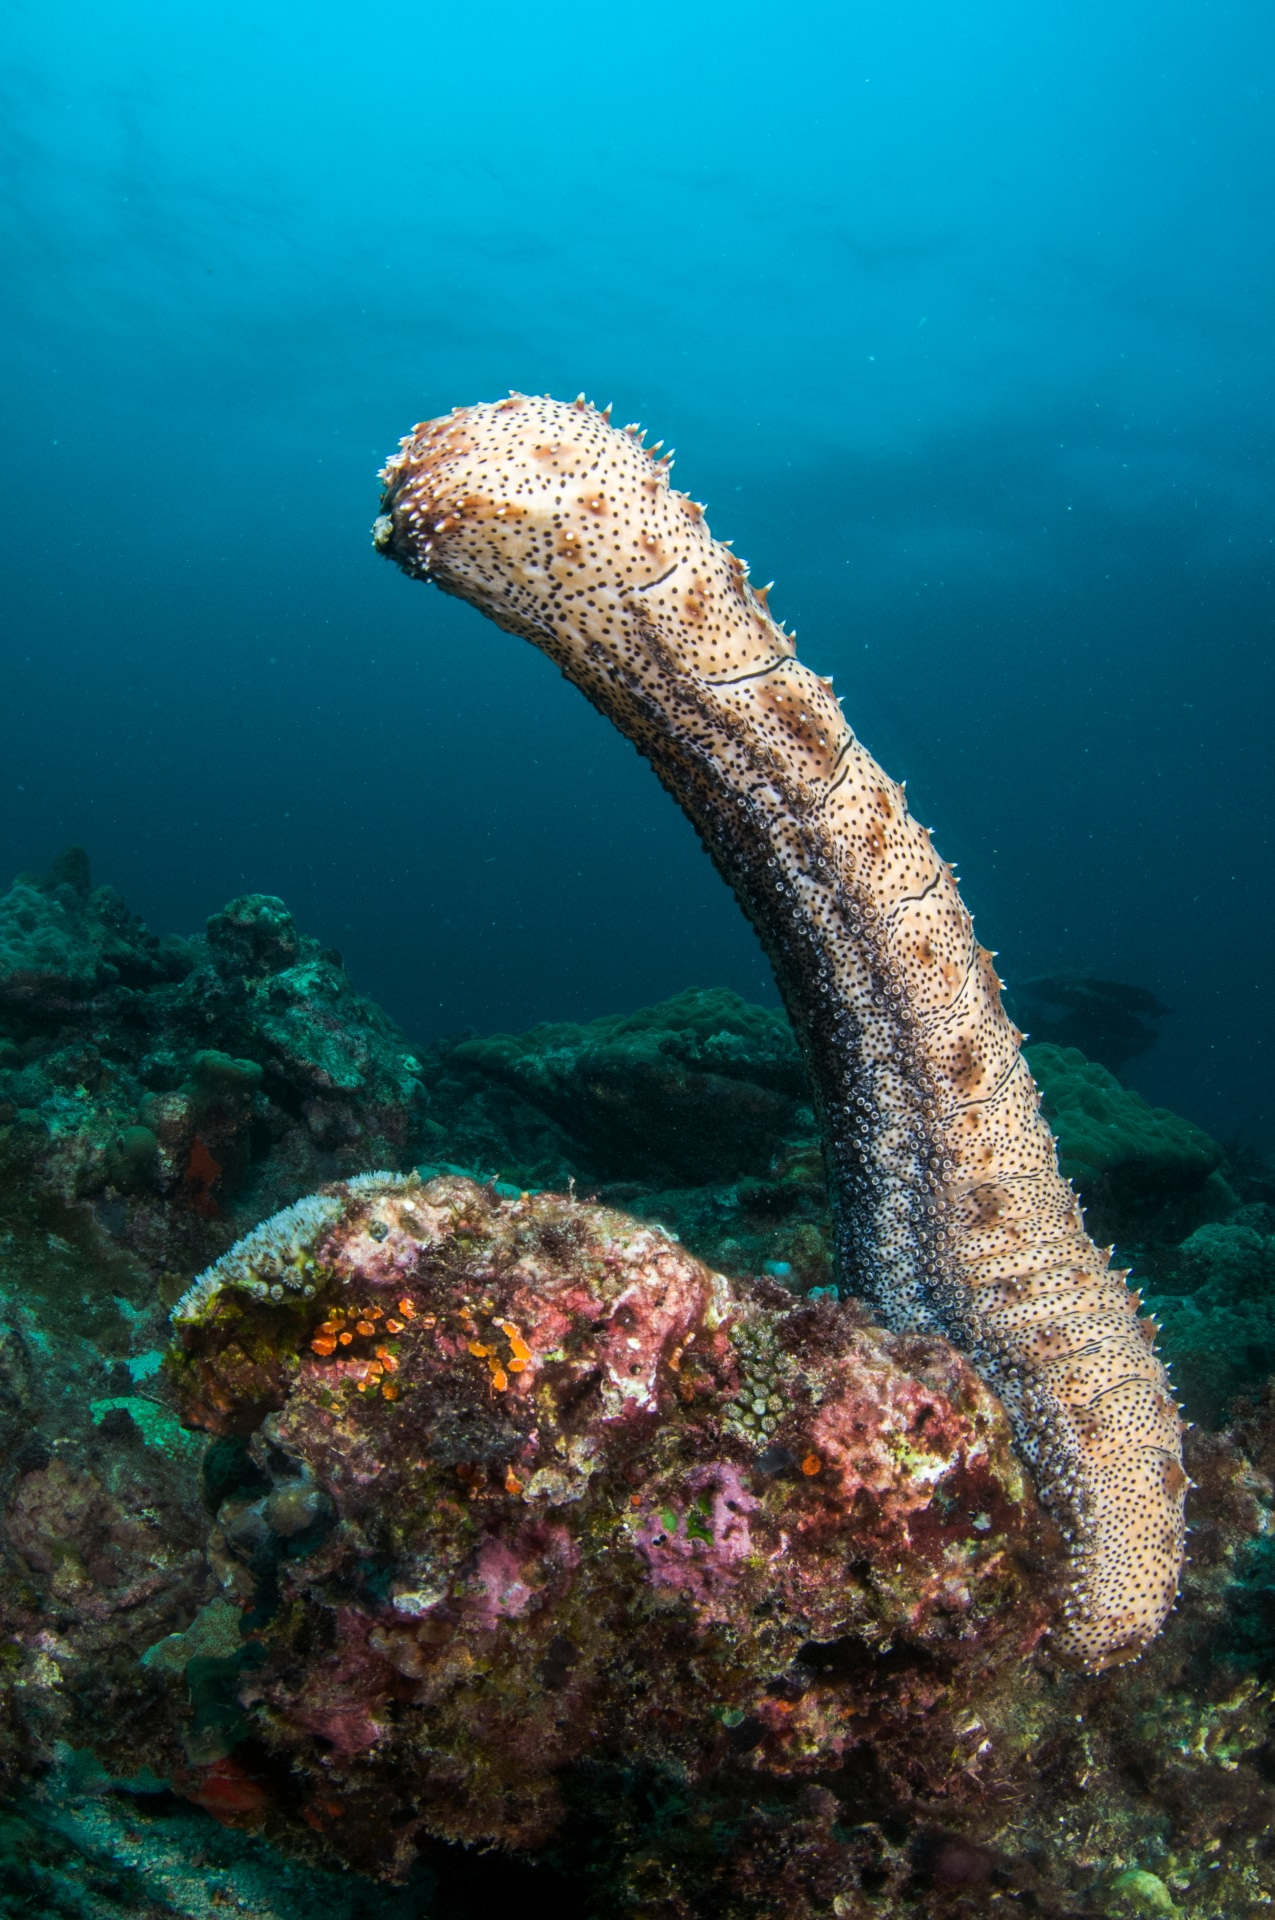 A marbled sea cucumber standing erect is signalling to others of its kind in the vicinity that it is ready to spawn. Photo: Umeed Mistry